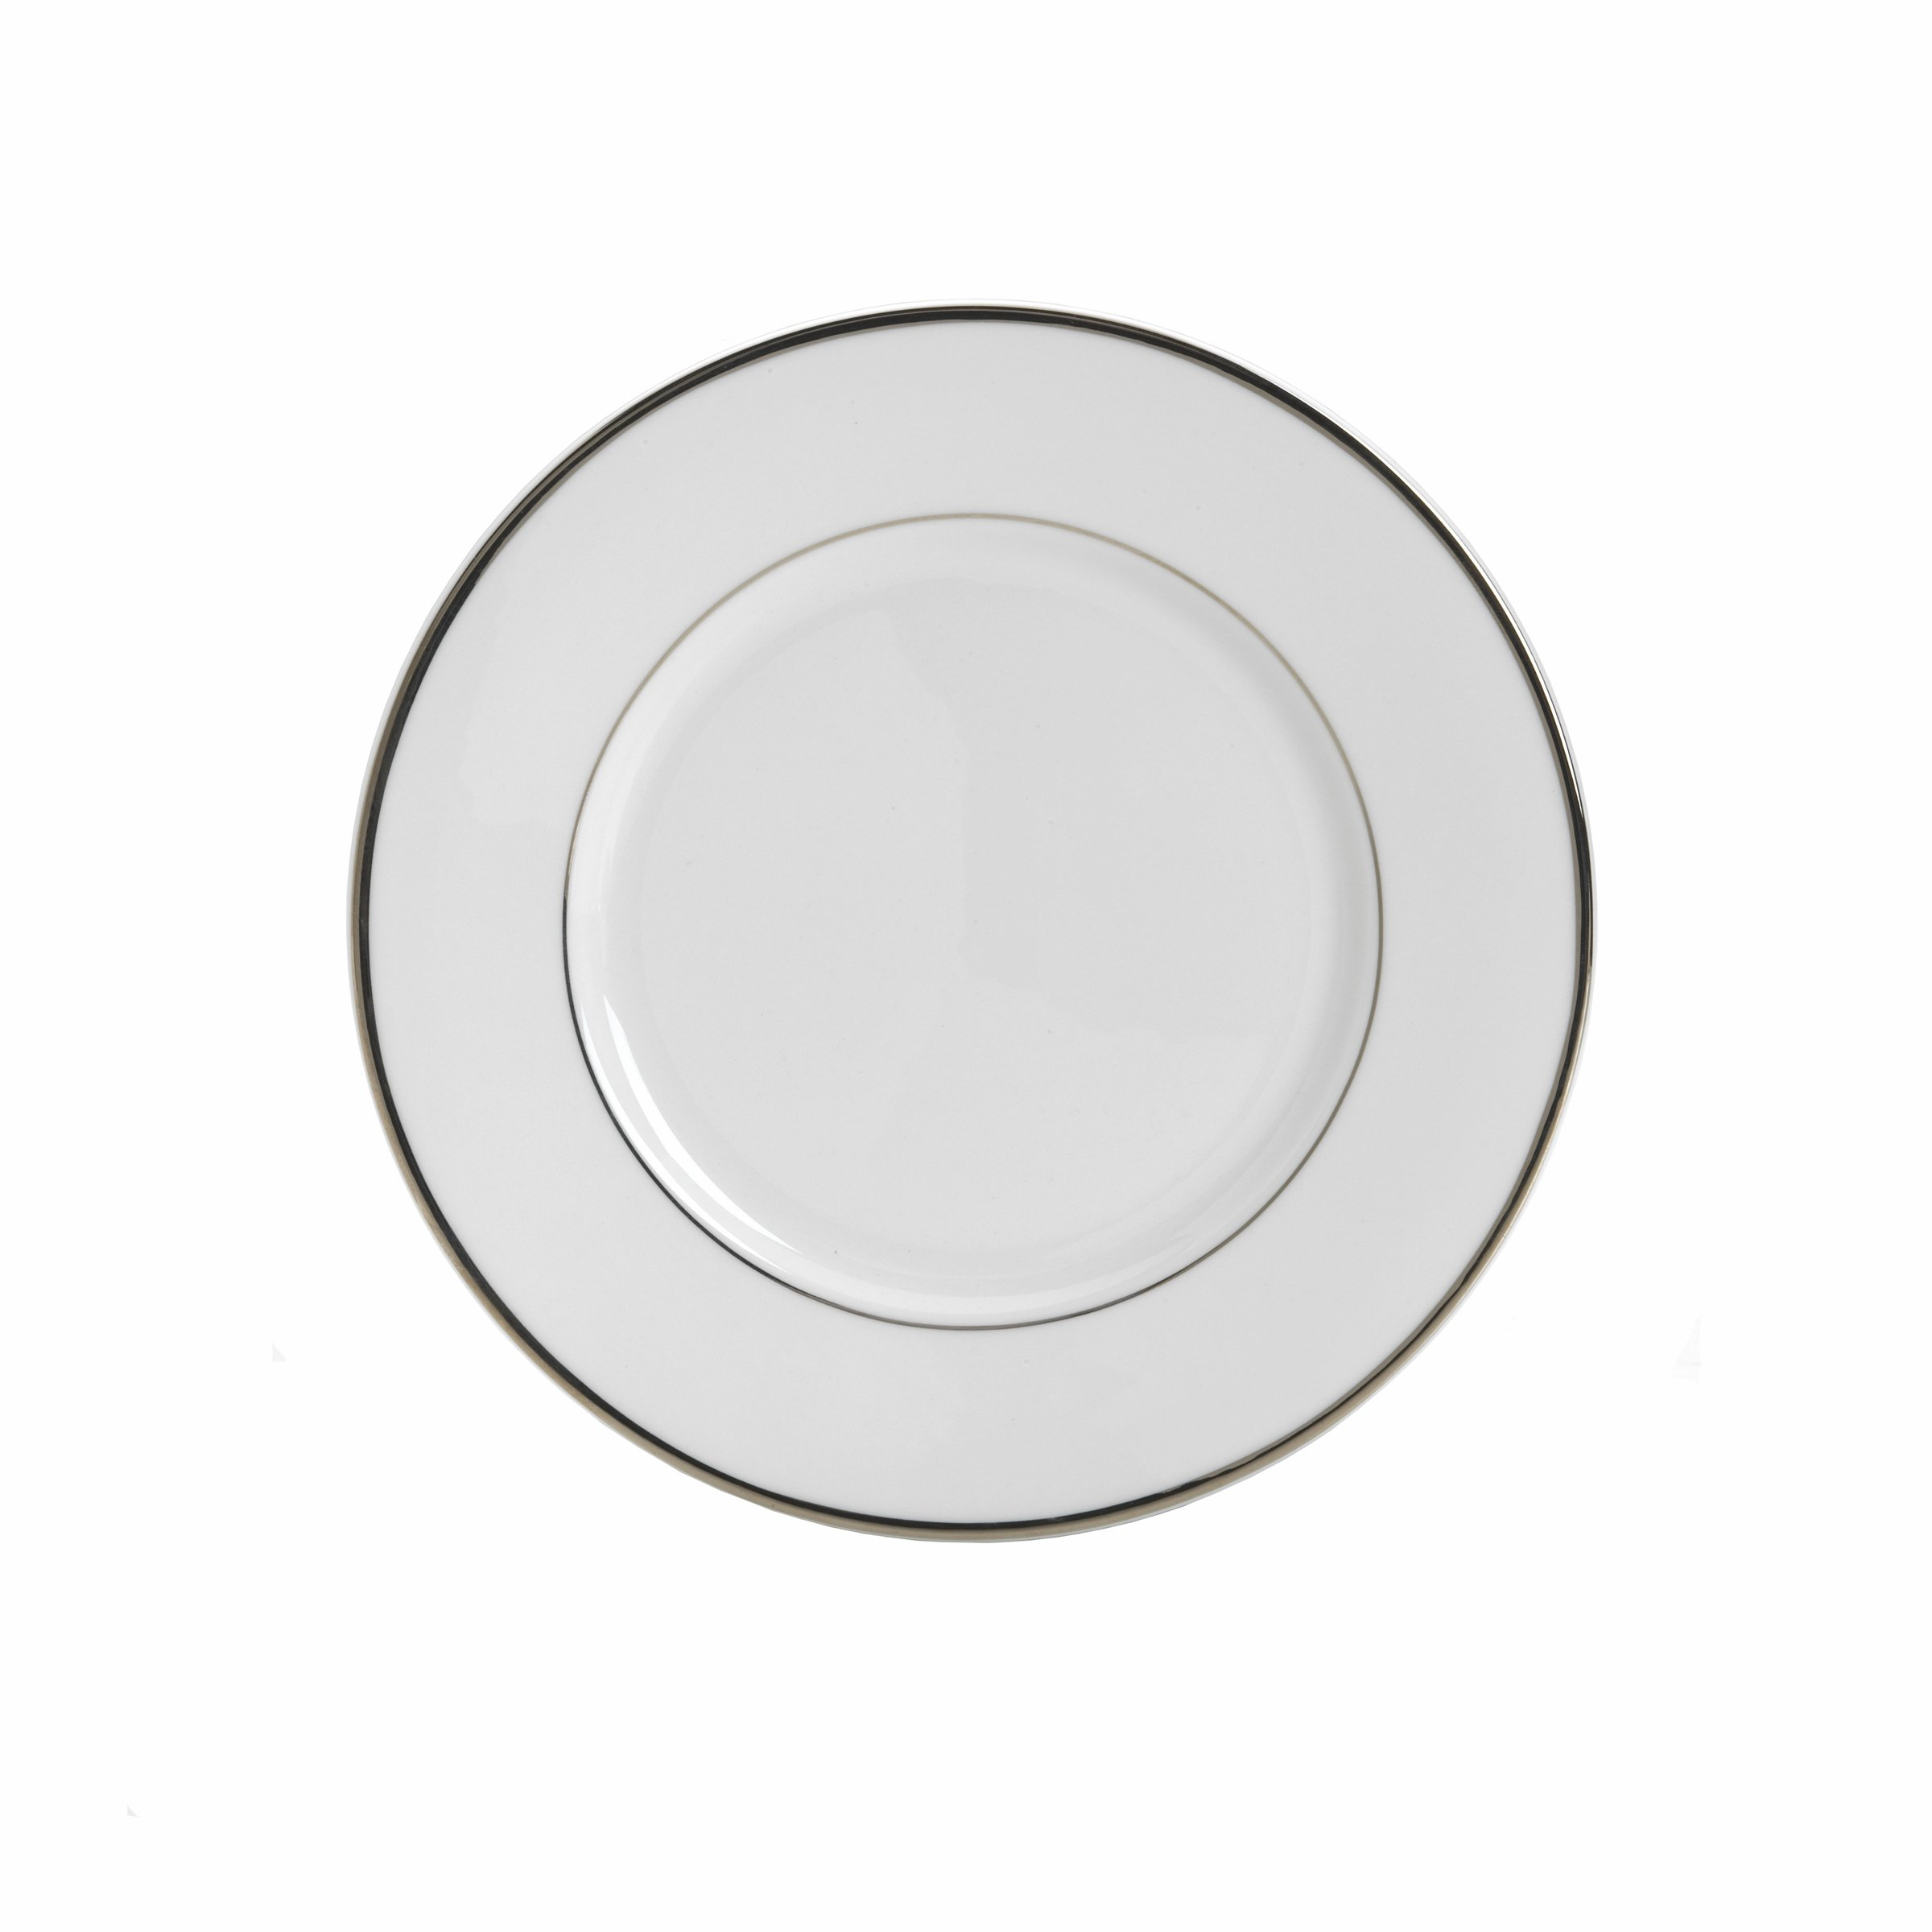 Mikasa Cameo Platinum Bread and Butter Plate, 7-Inch